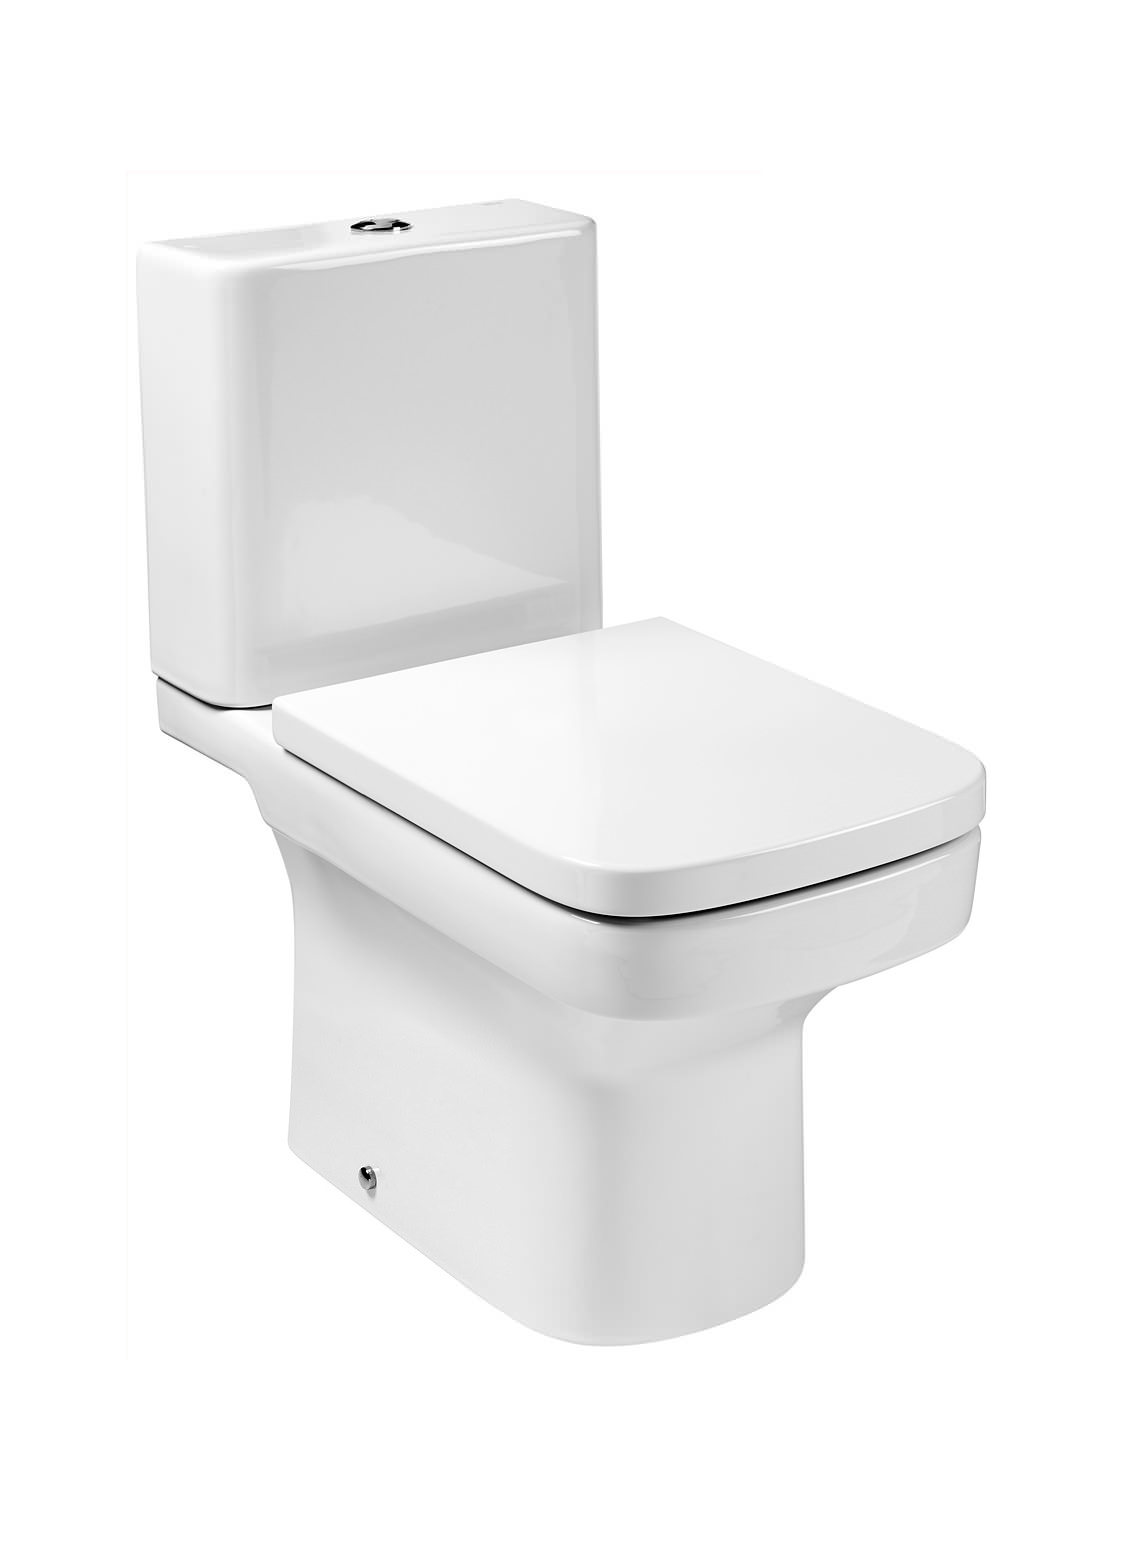 Roca Dama N Close Coupled WC Pan With Fixing Kit 660mm 342787000